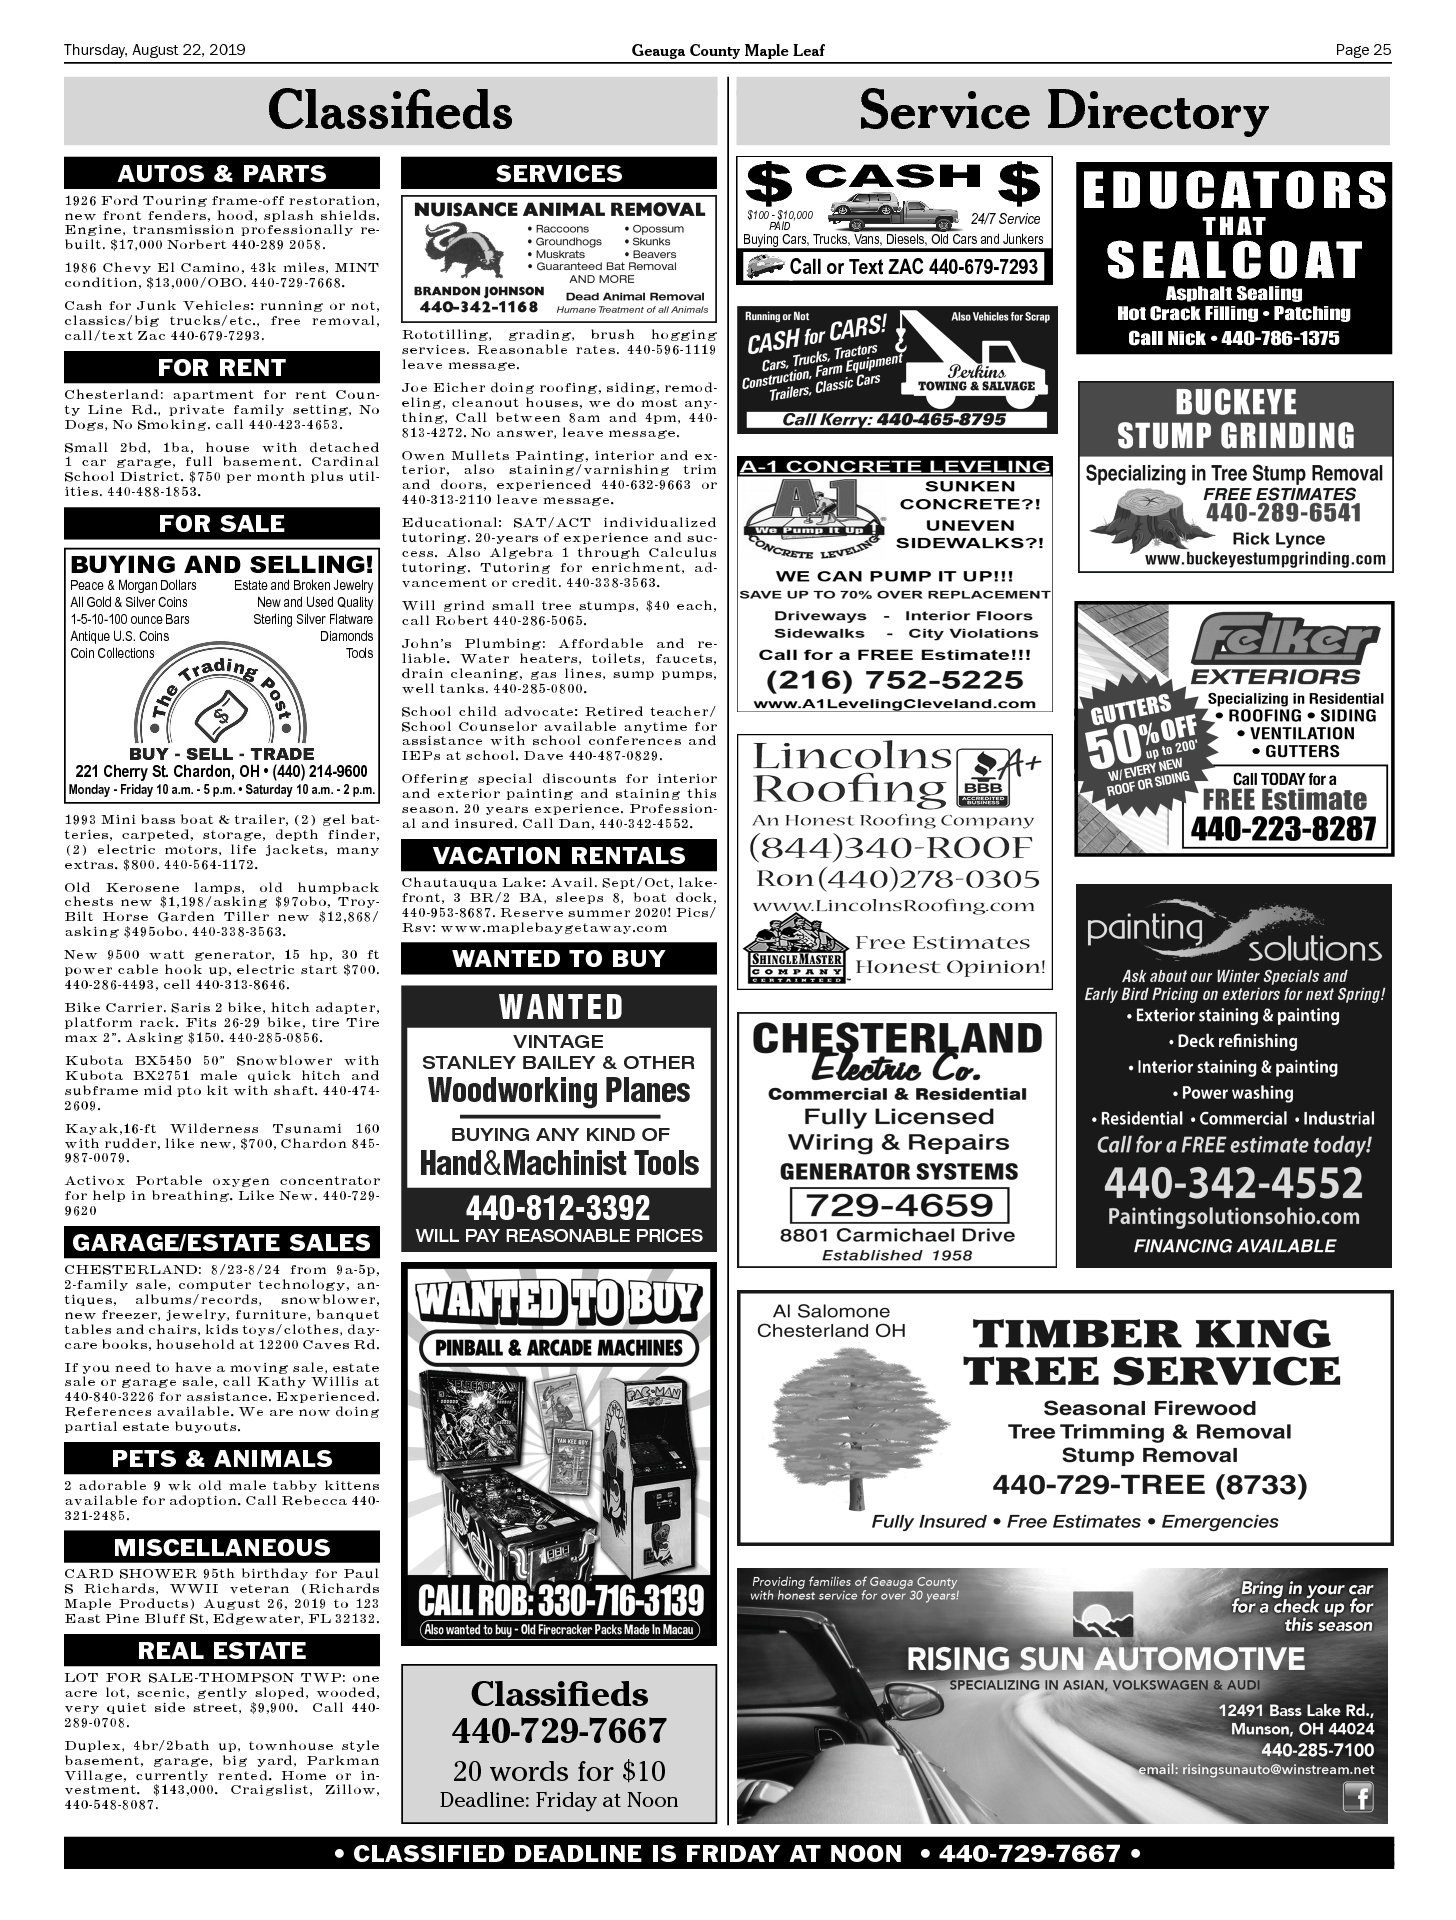 8-22-2019 CLASSIFIEDS | Geauga County Maple Leaf